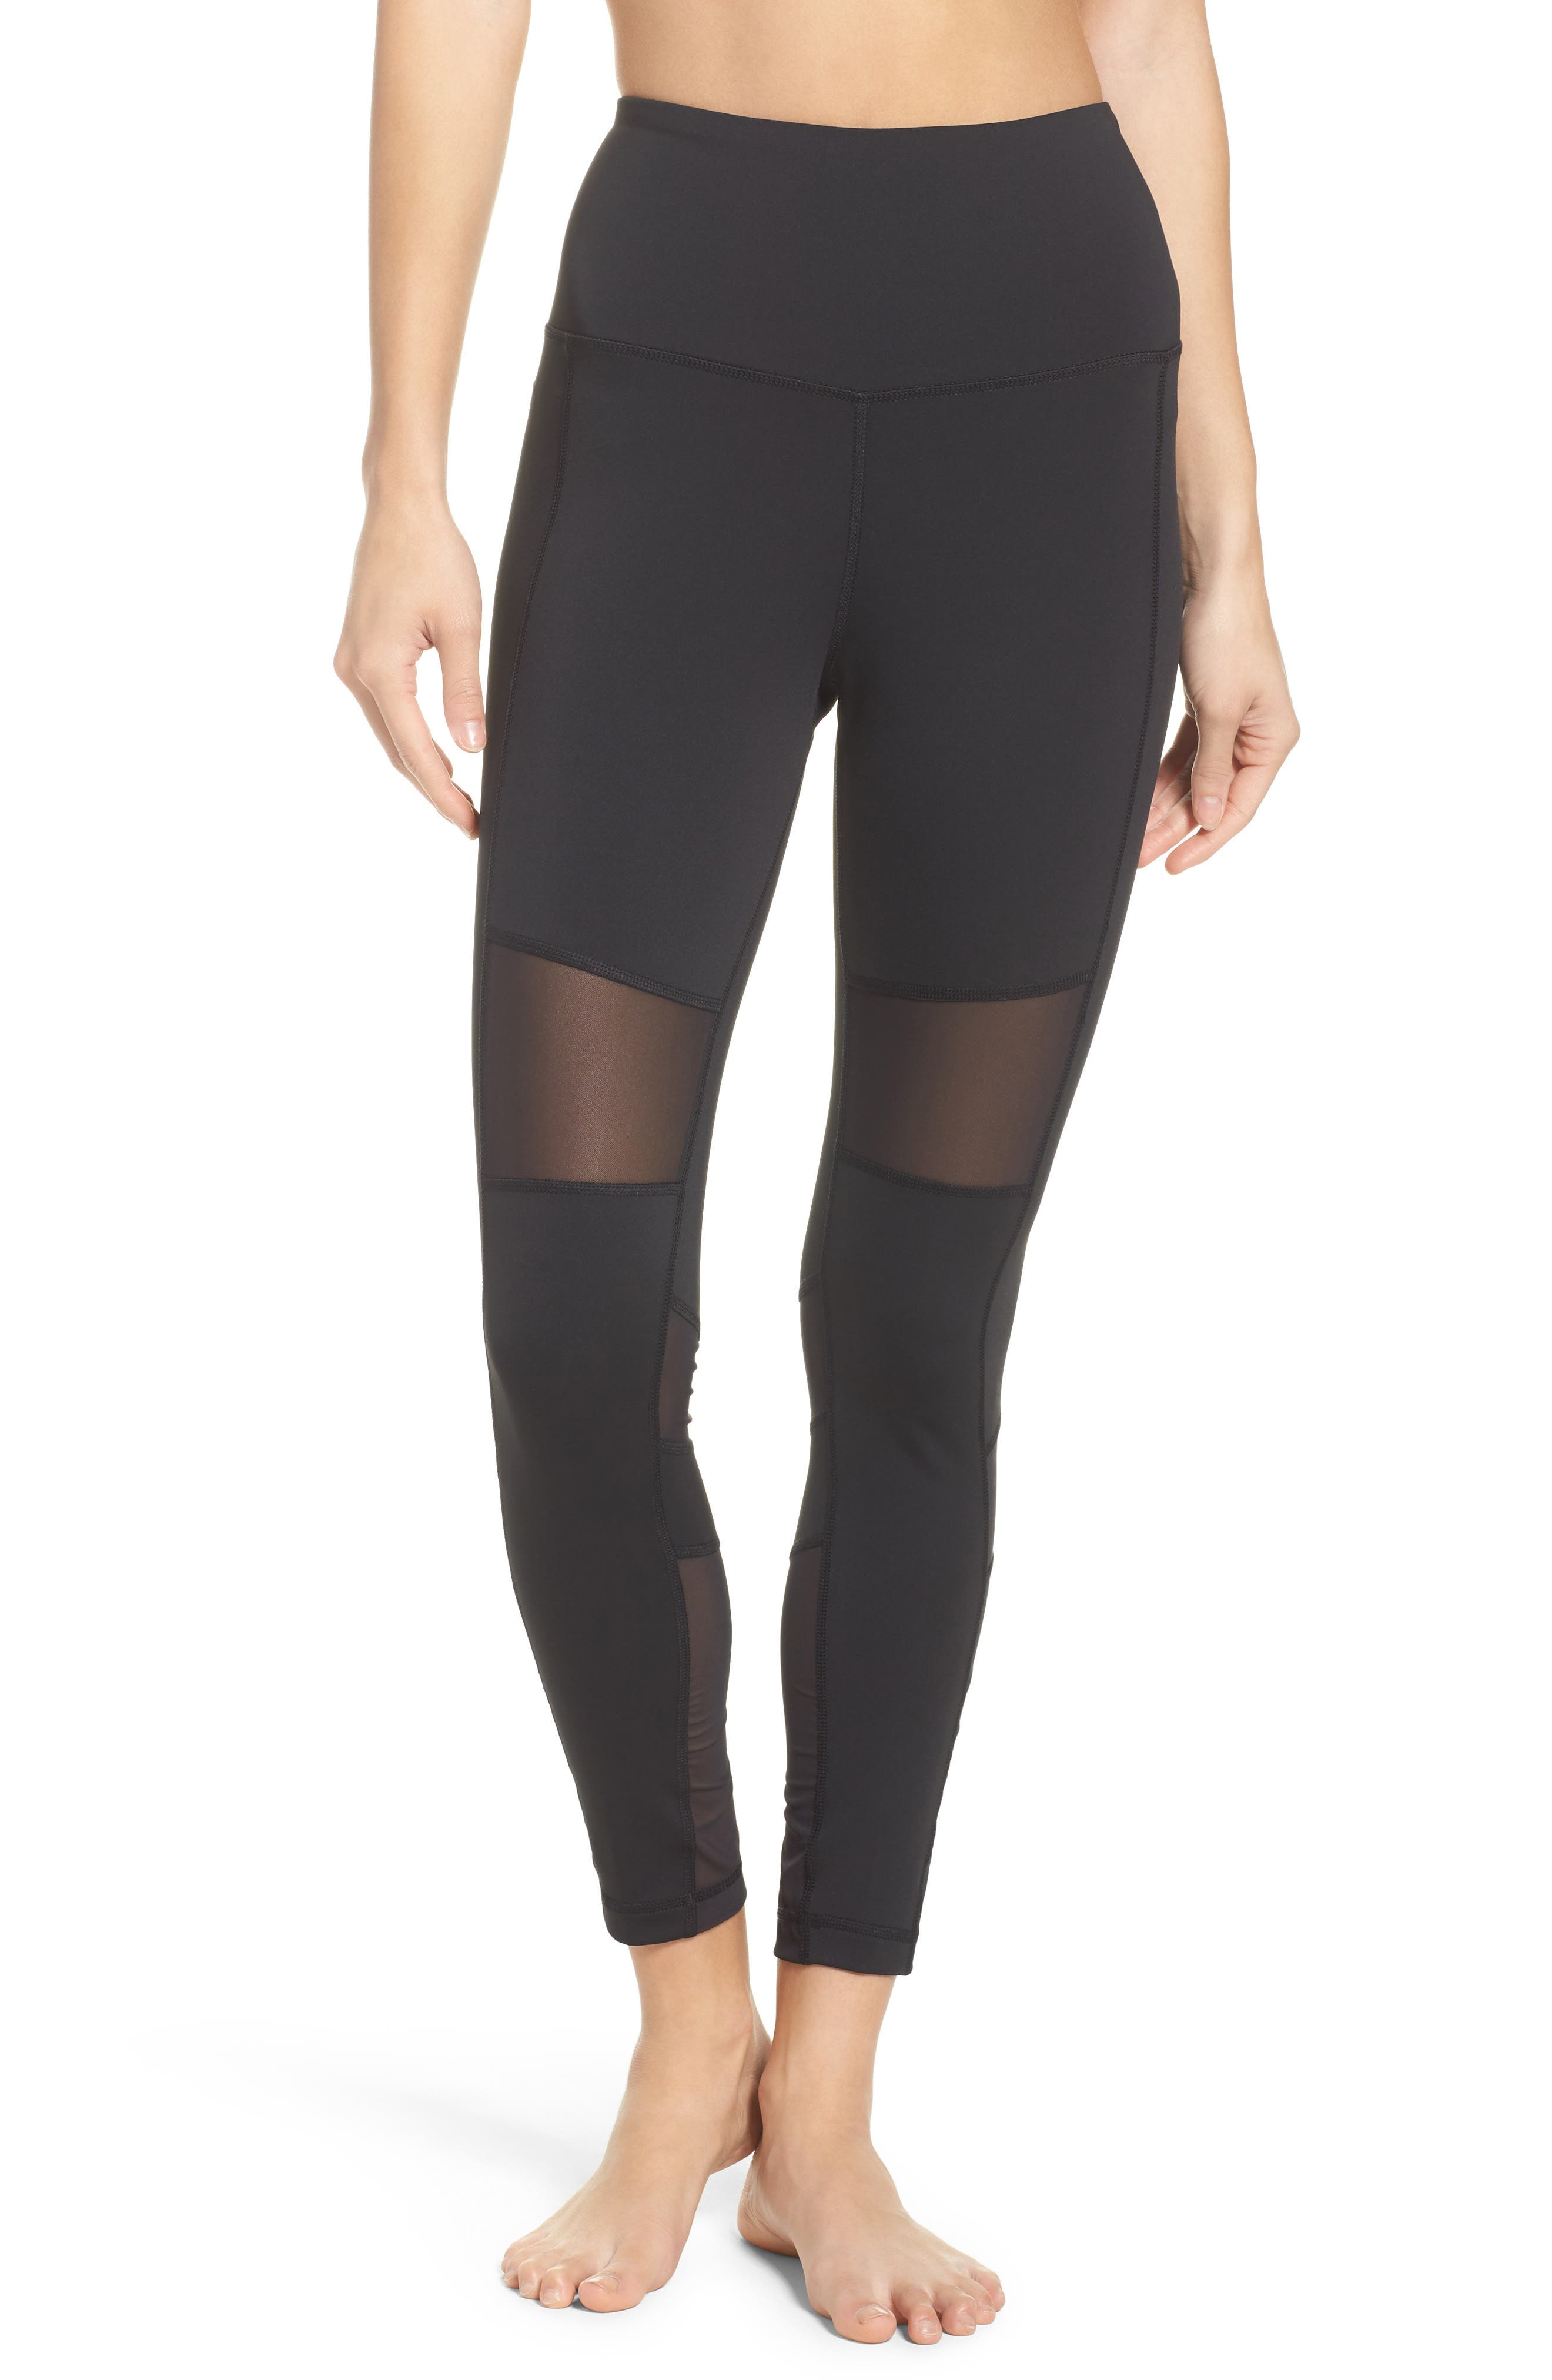 Lux Mesh High Waist Tights,                         Main,                         color,